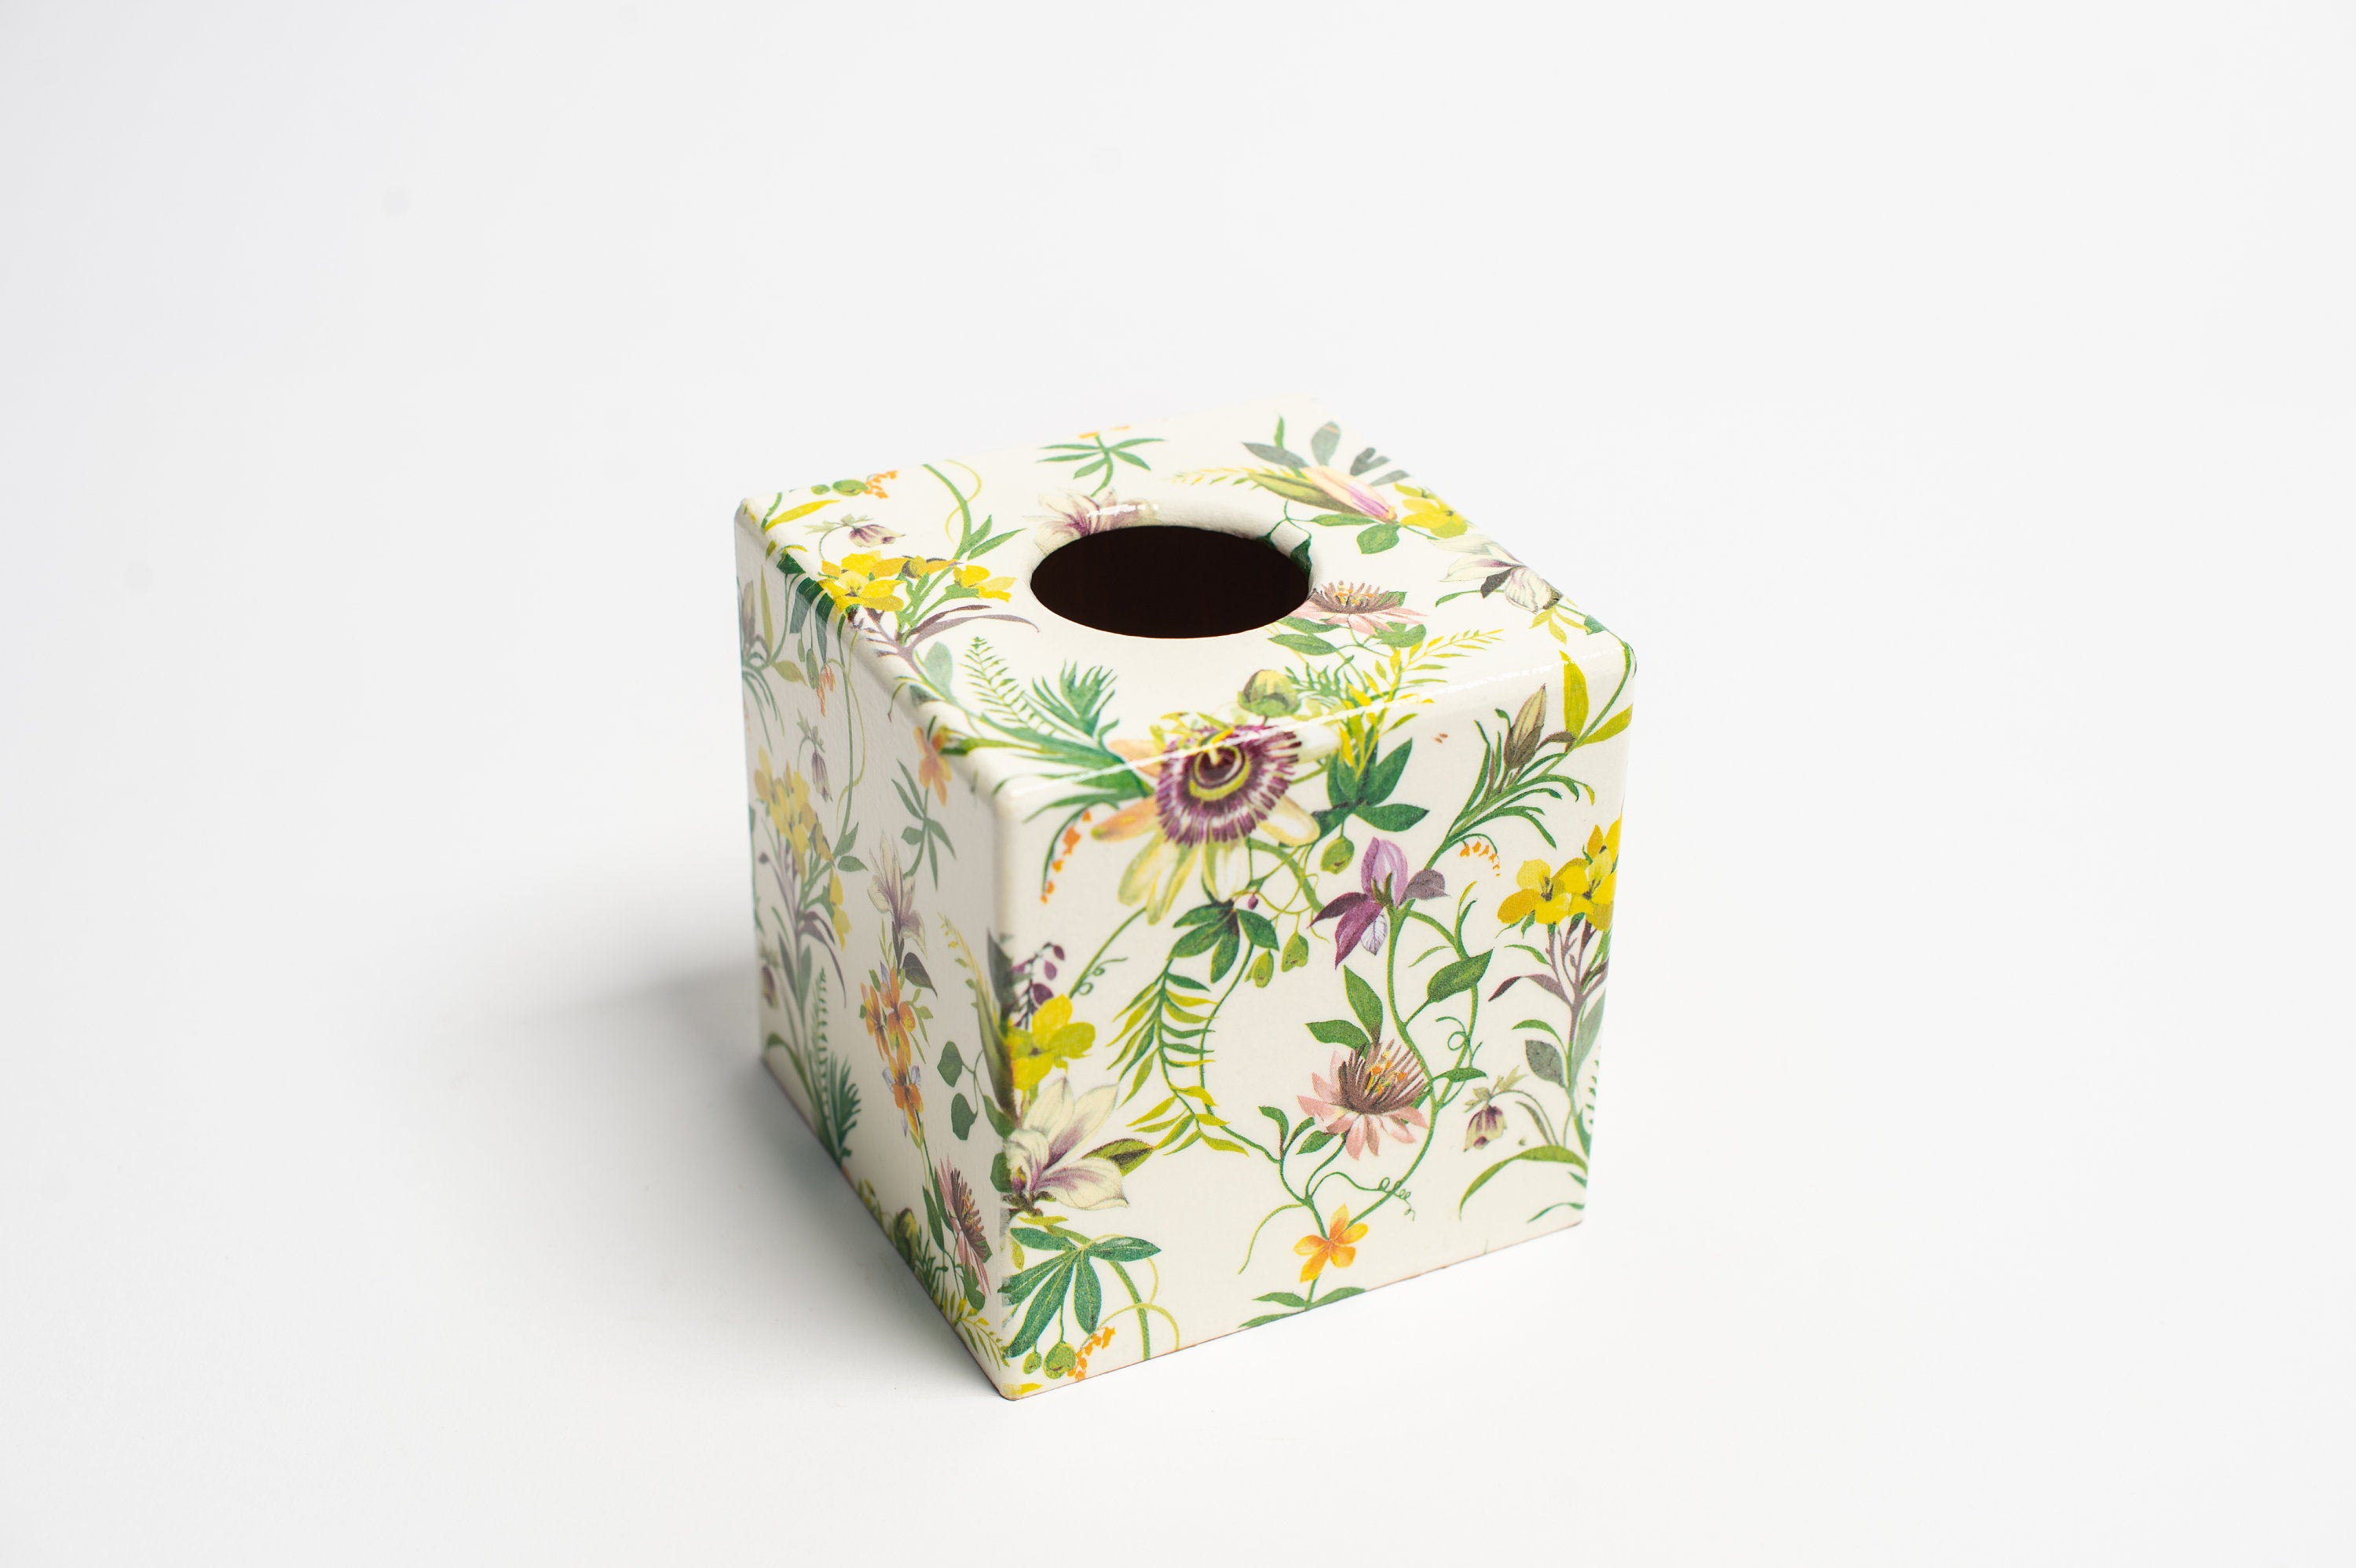 Passion Flower Waste Paper Bin & Tissue Box Cover Set